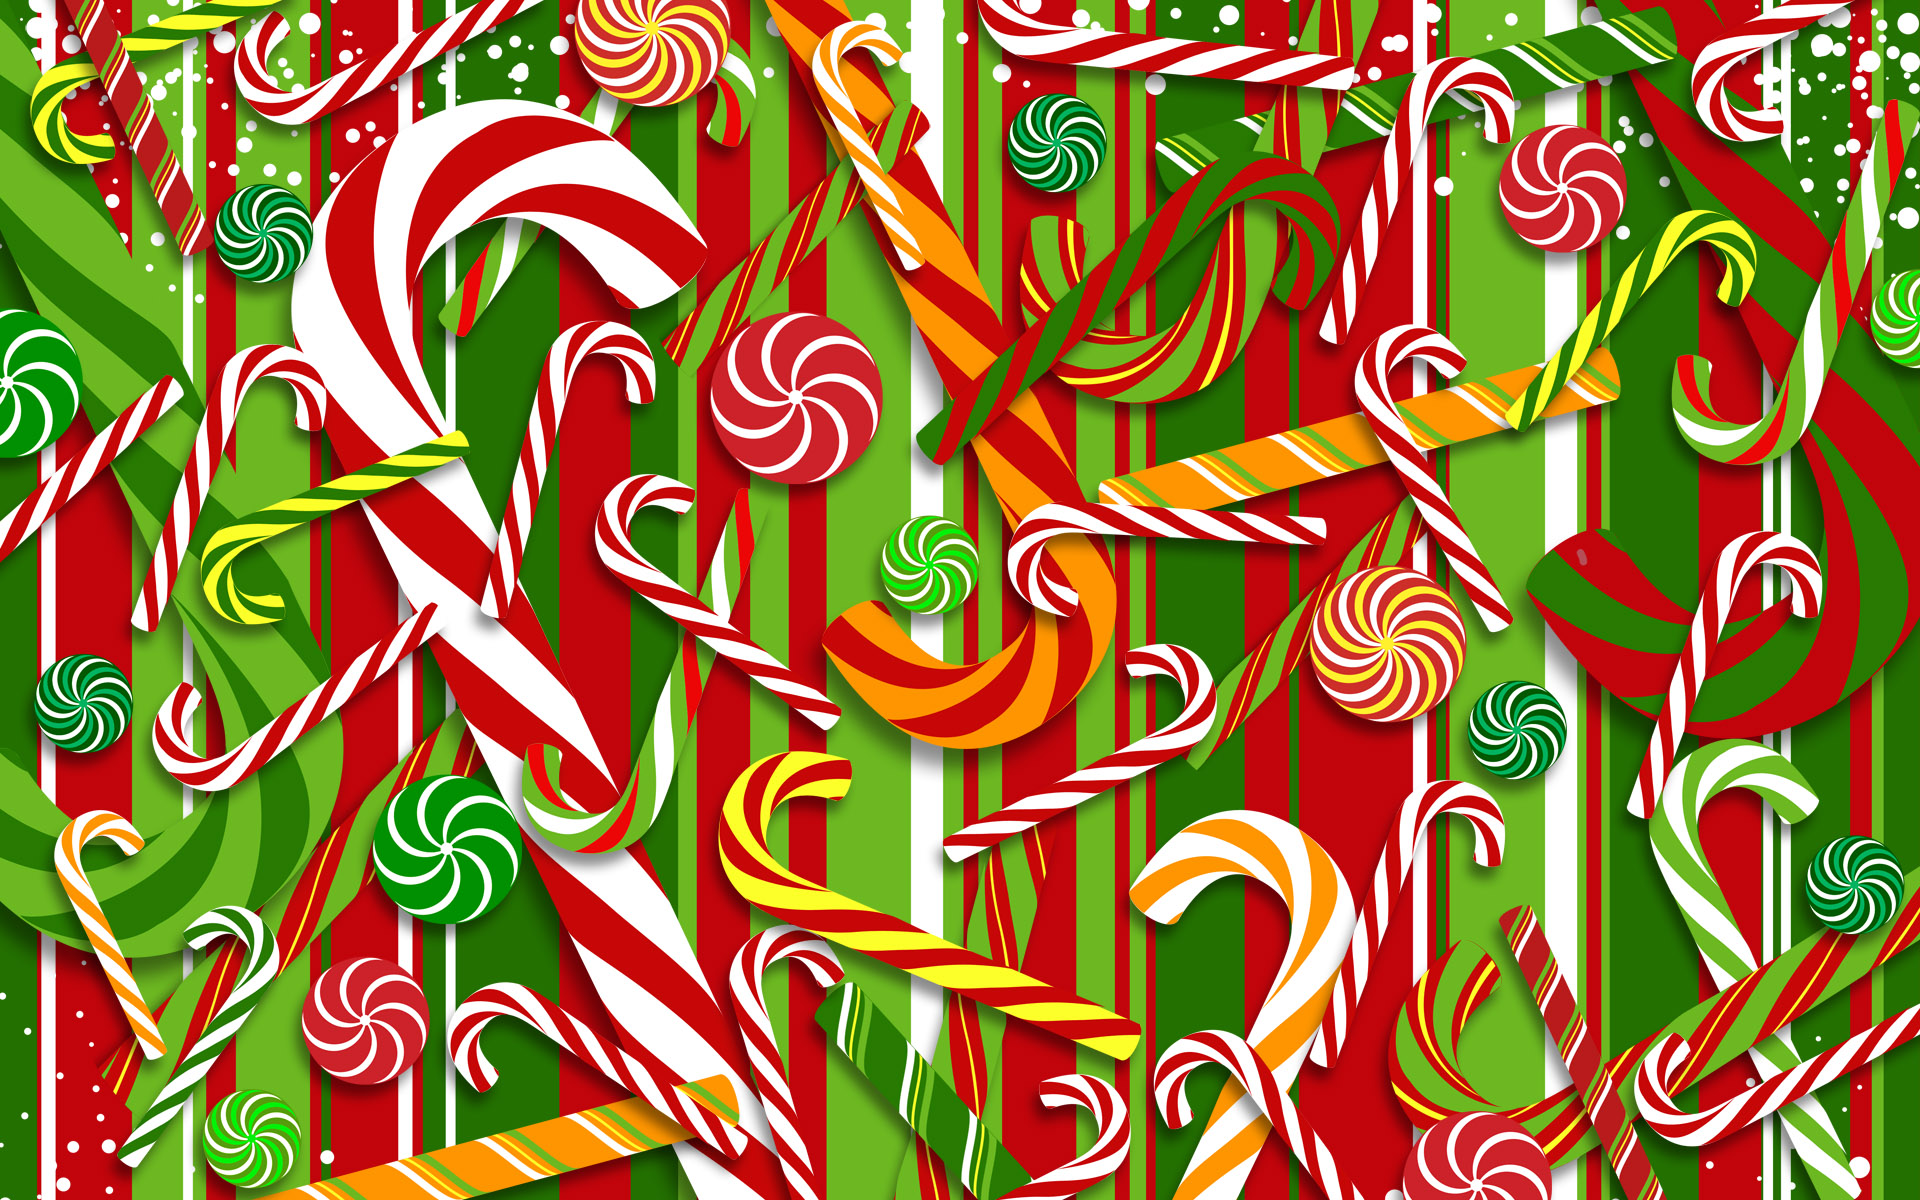 Download the Candy Cane Galore Wallpaper Candy Cane 1920x1200